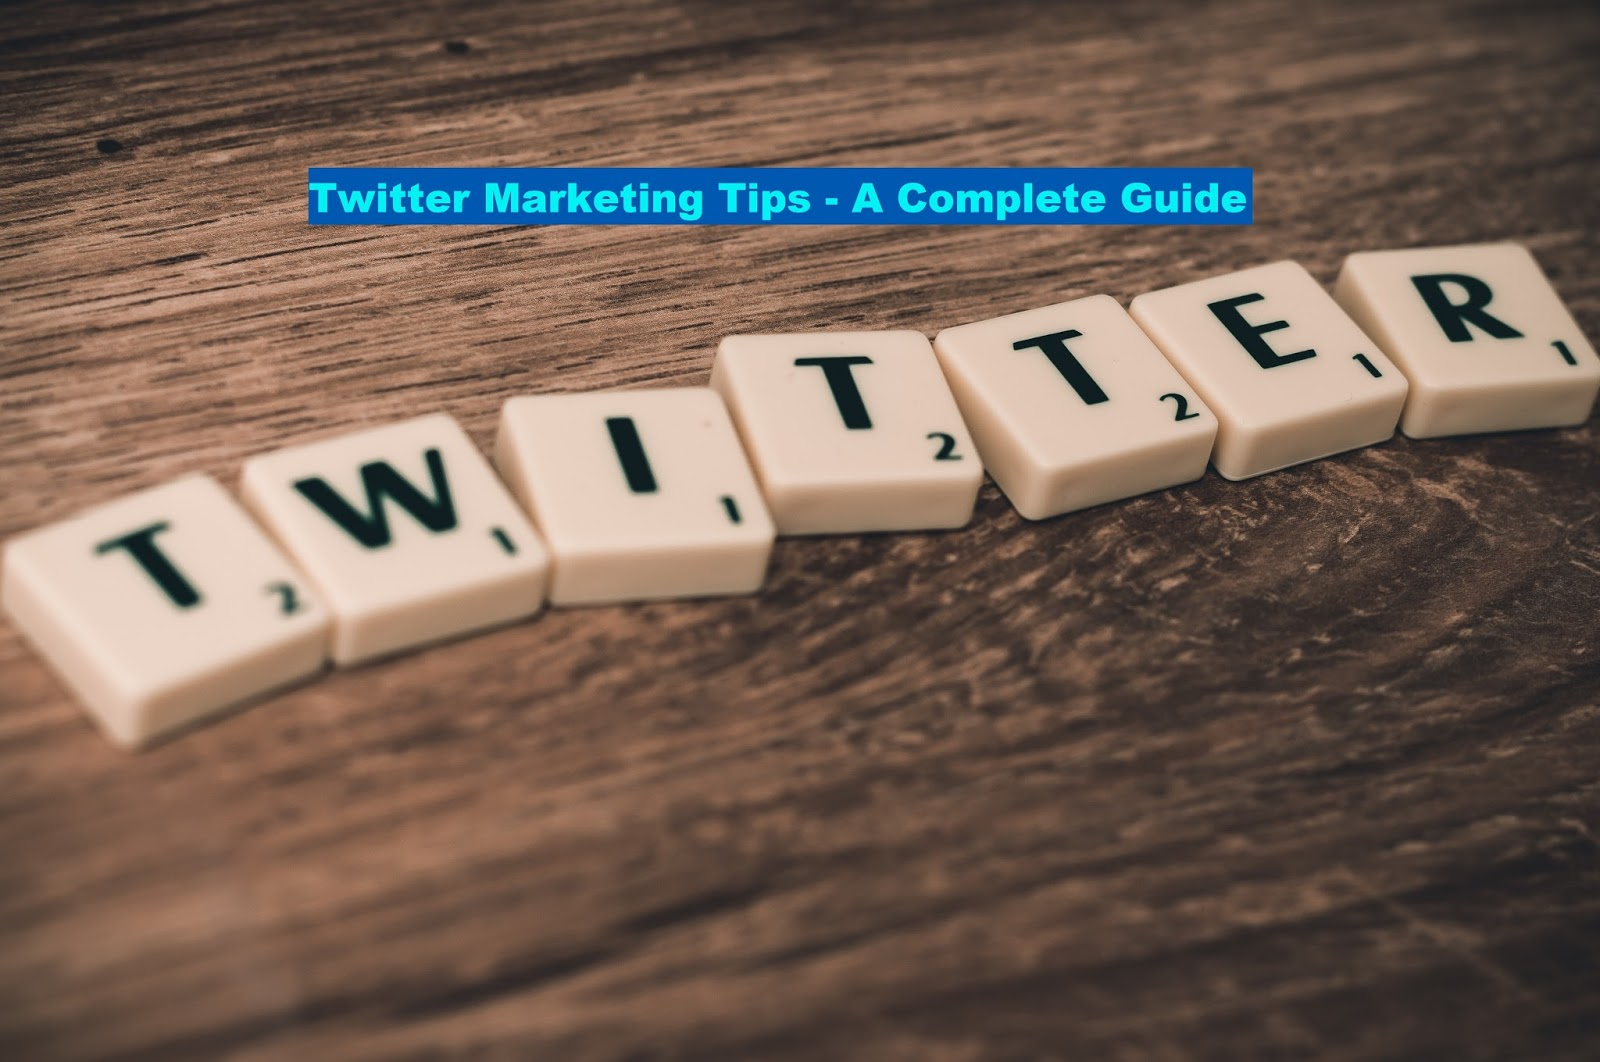 Twitter Marketing Tips - A Complete Guide! - Digital Marketing NewHood - Get Best Digital Marketing Tips!!